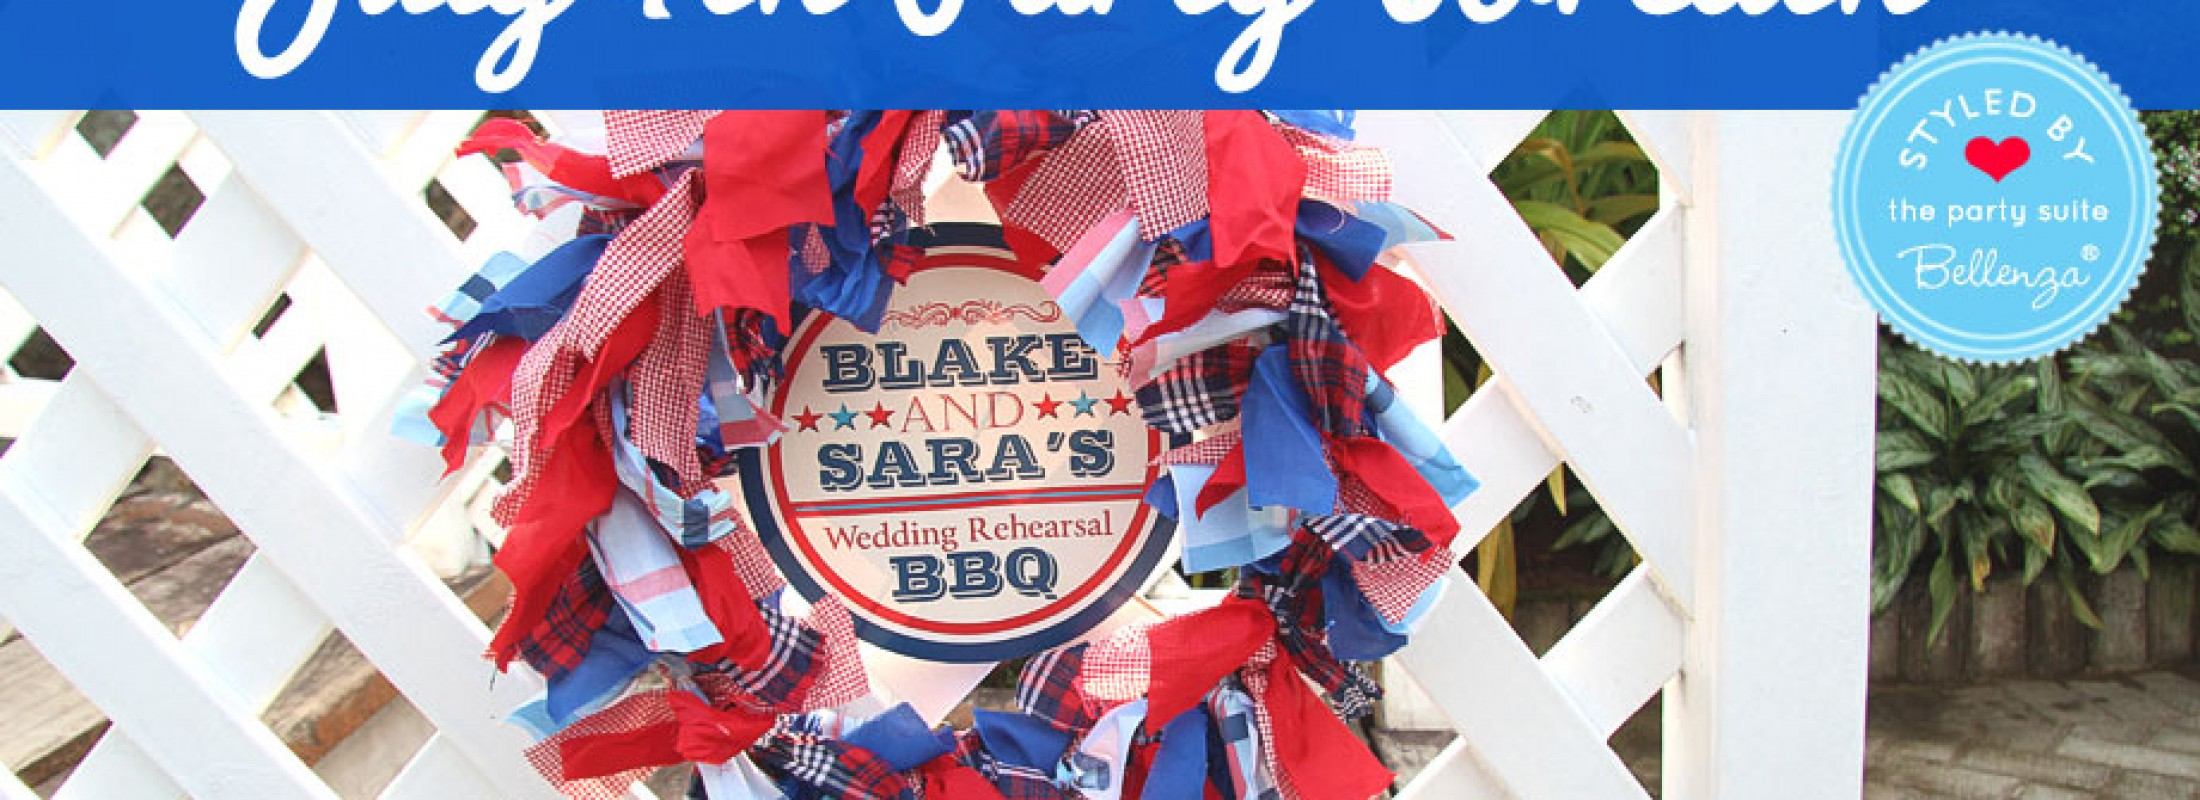 July 4th wreath as a decorations or hostess gifts.